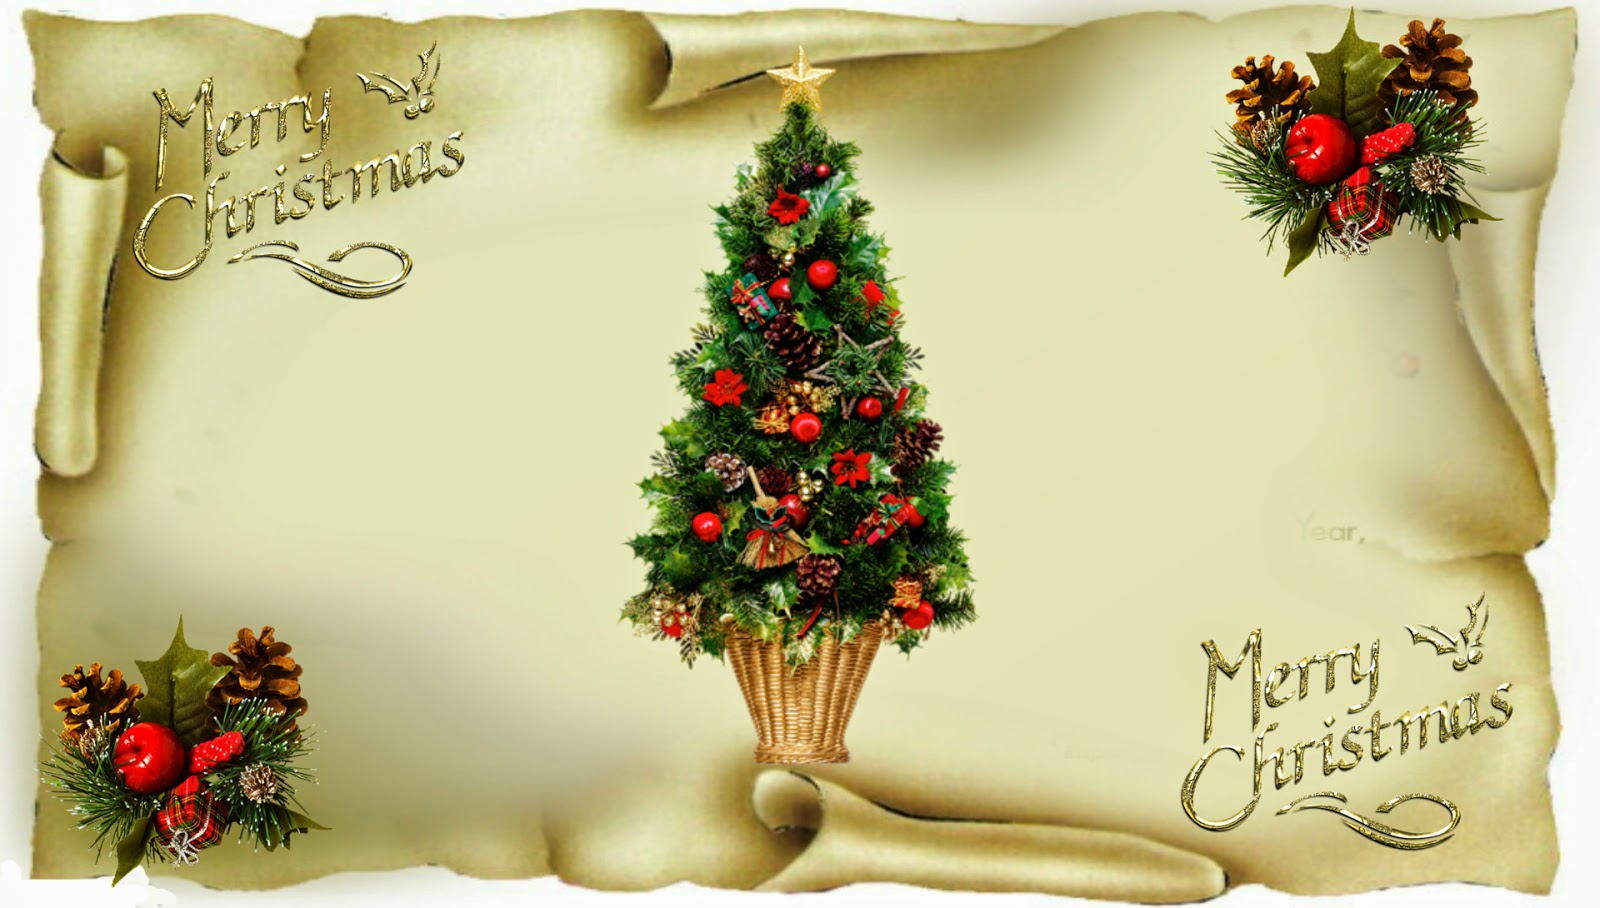 Top Hd Christmas Cards Wallpaper: Merry Christmas Greeting Card HD Images Free Download